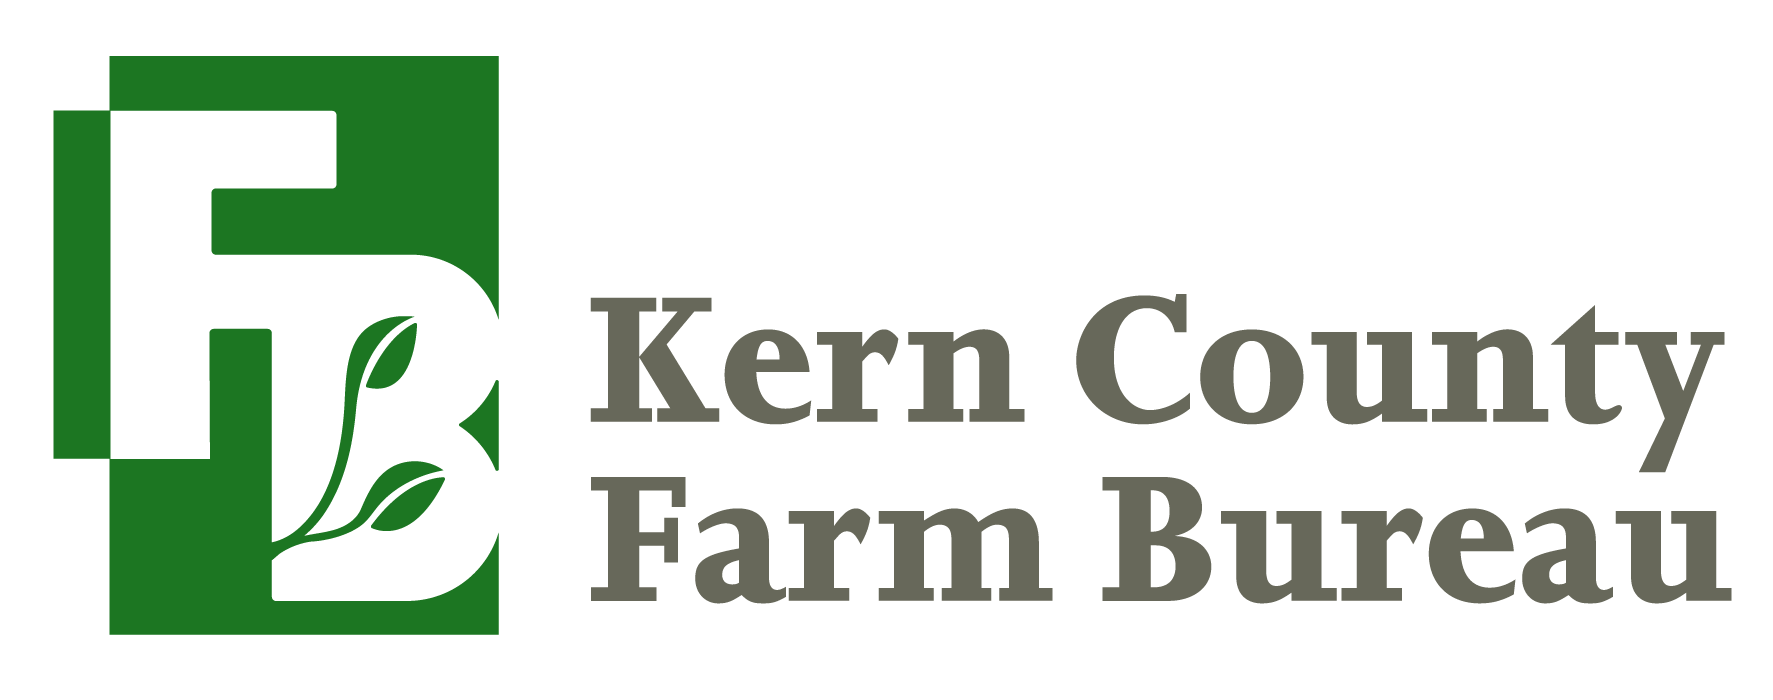 kern county farmers bureau represent kern county s agriculture interest through public. Black Bedroom Furniture Sets. Home Design Ideas